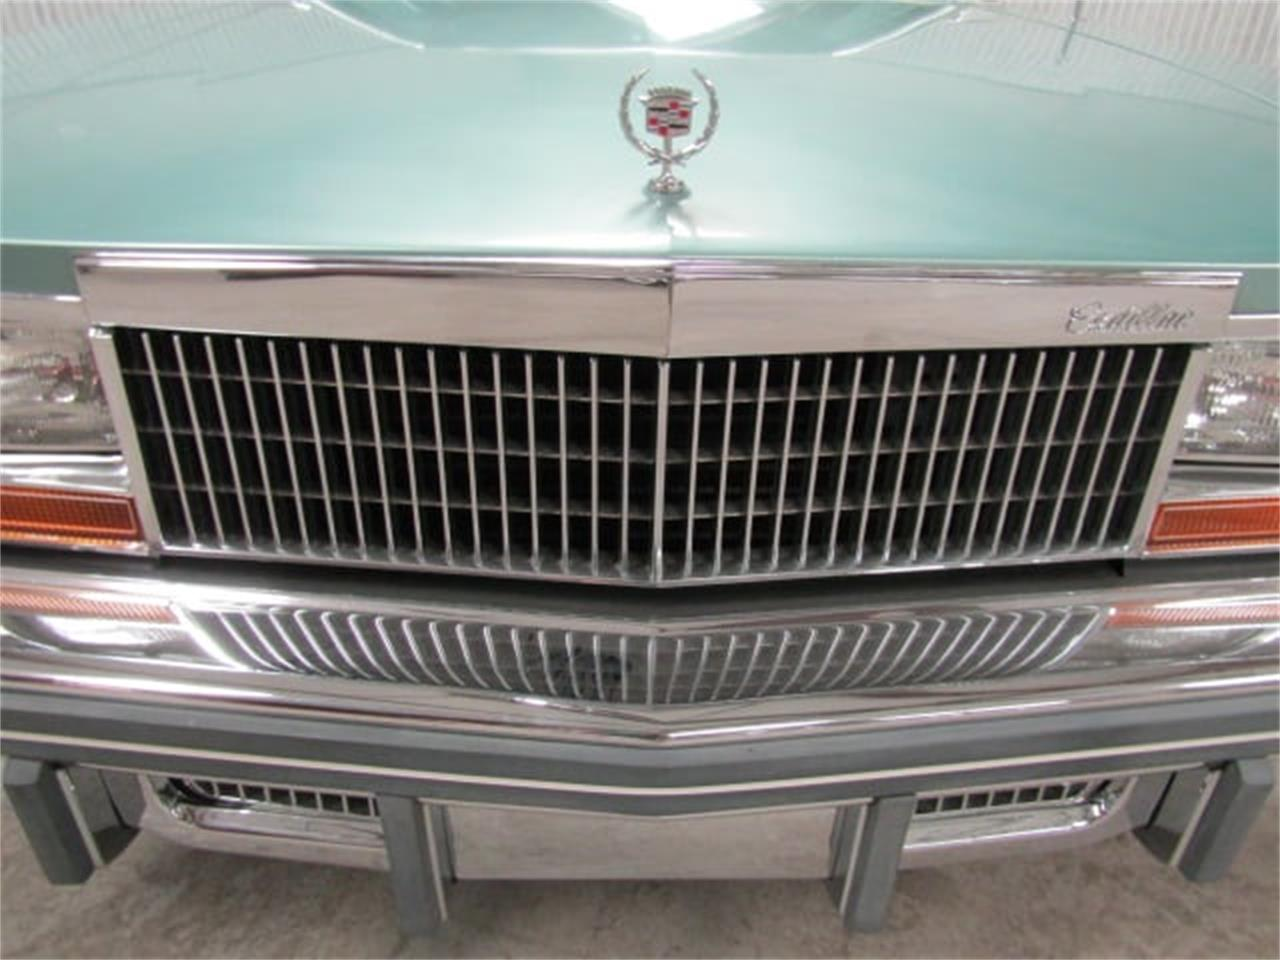 Large Picture of '77 Cadillac Seville Offered by Duncan Imports & Classic Cars - LIA0